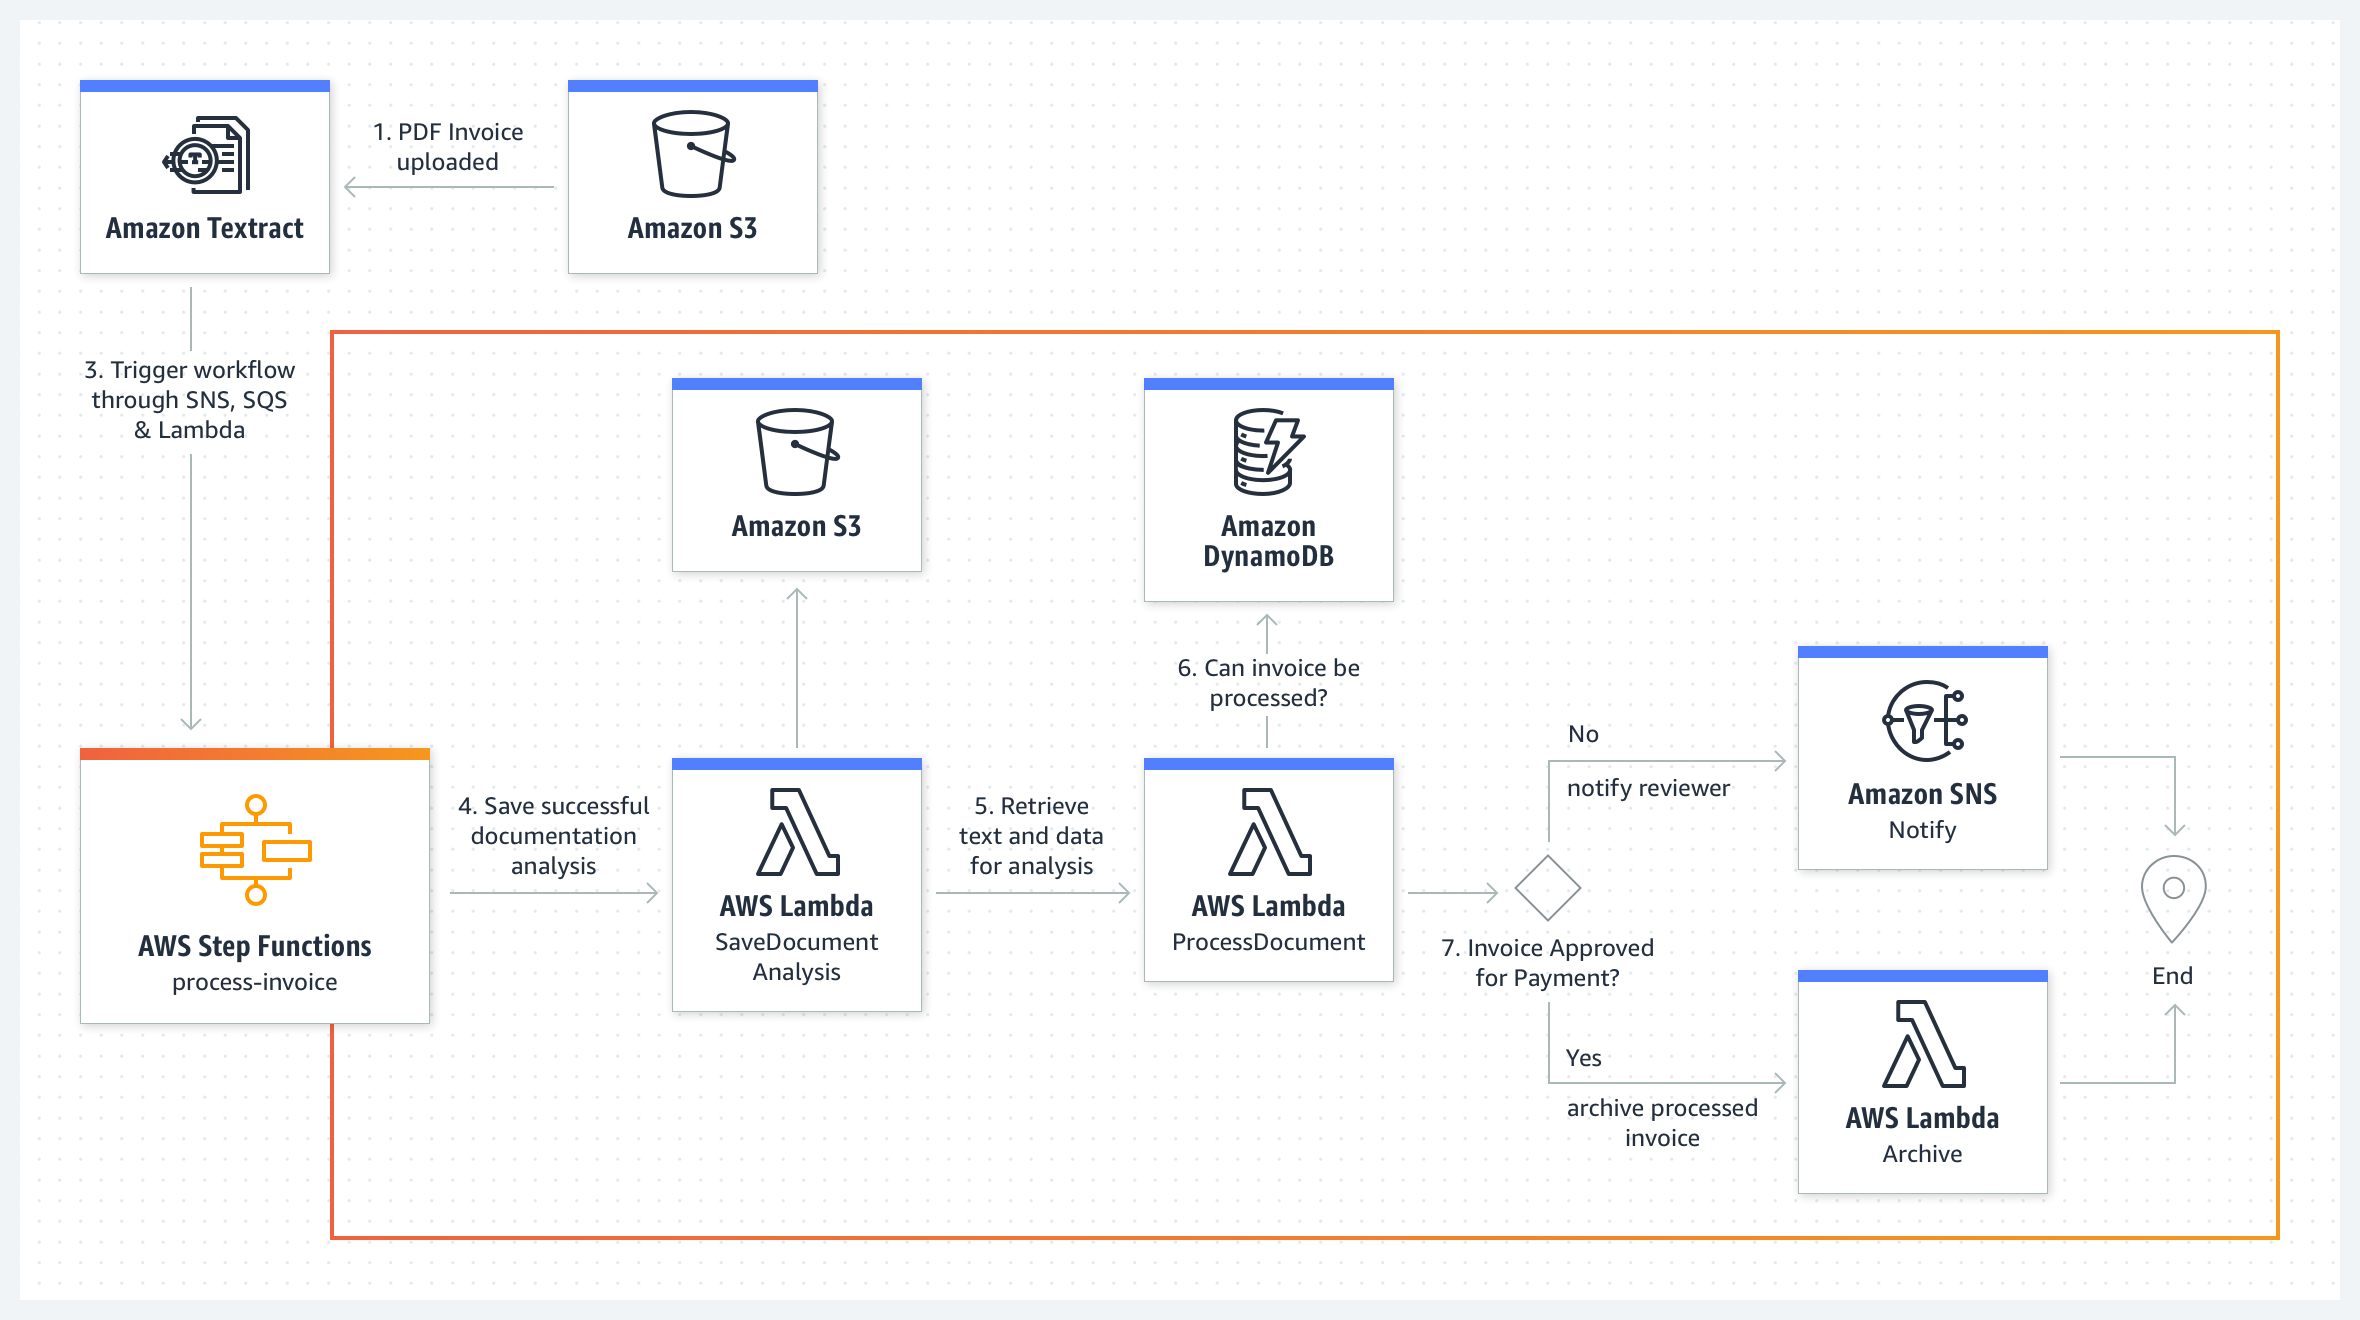 use-case-diagram_AWS-Step-Functions_Extract-data-from-PDF@2x